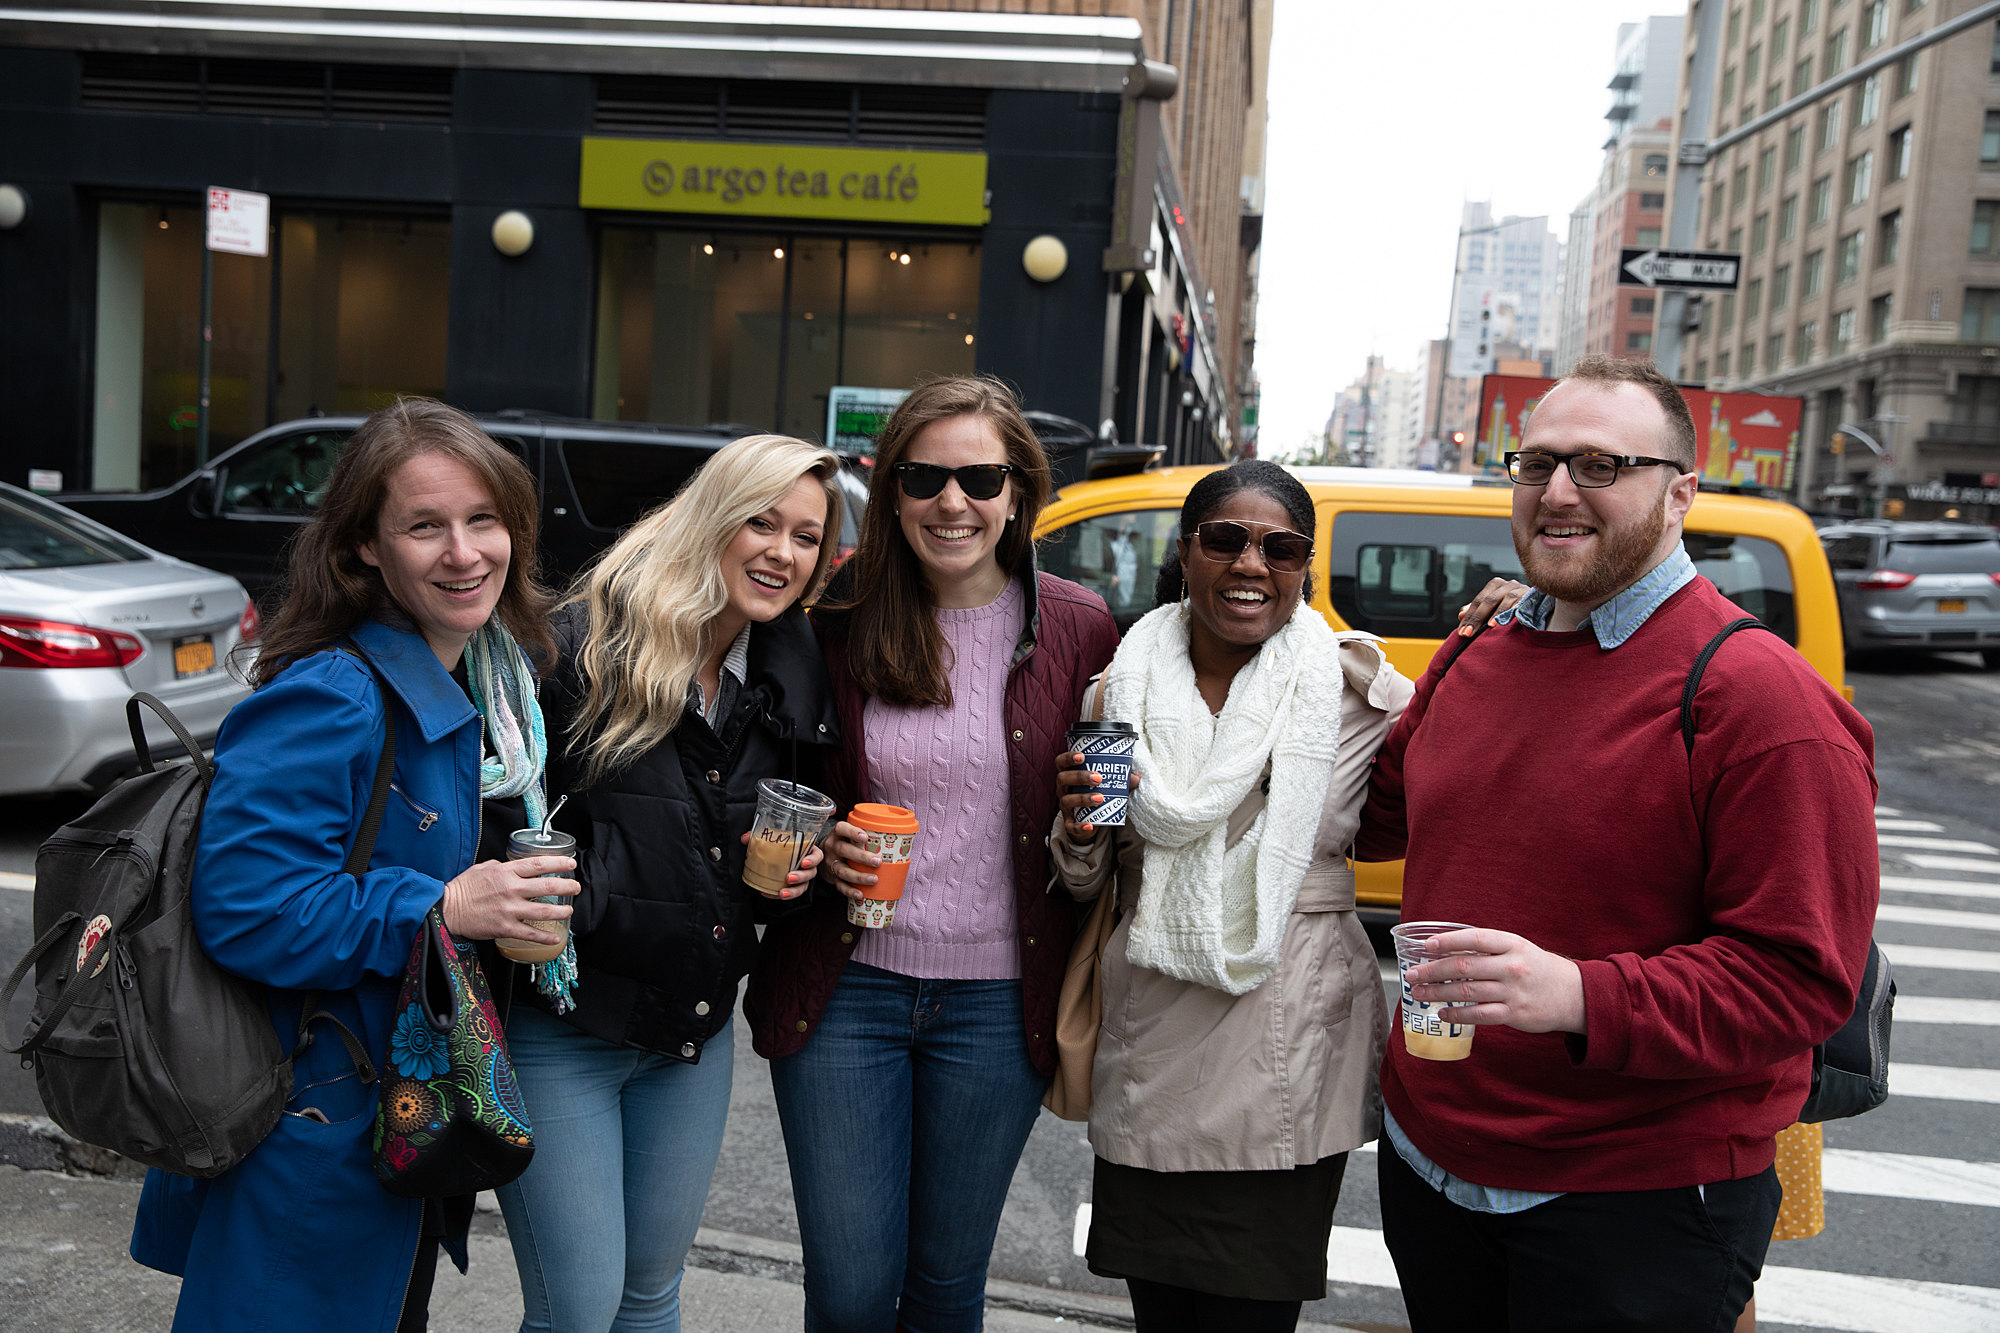 Michelle Kedem, Kristen Poemer, Alana Althans, Imani Doyle, and Sivan Philo pose for a photo on a busy New York City street after a coffee break